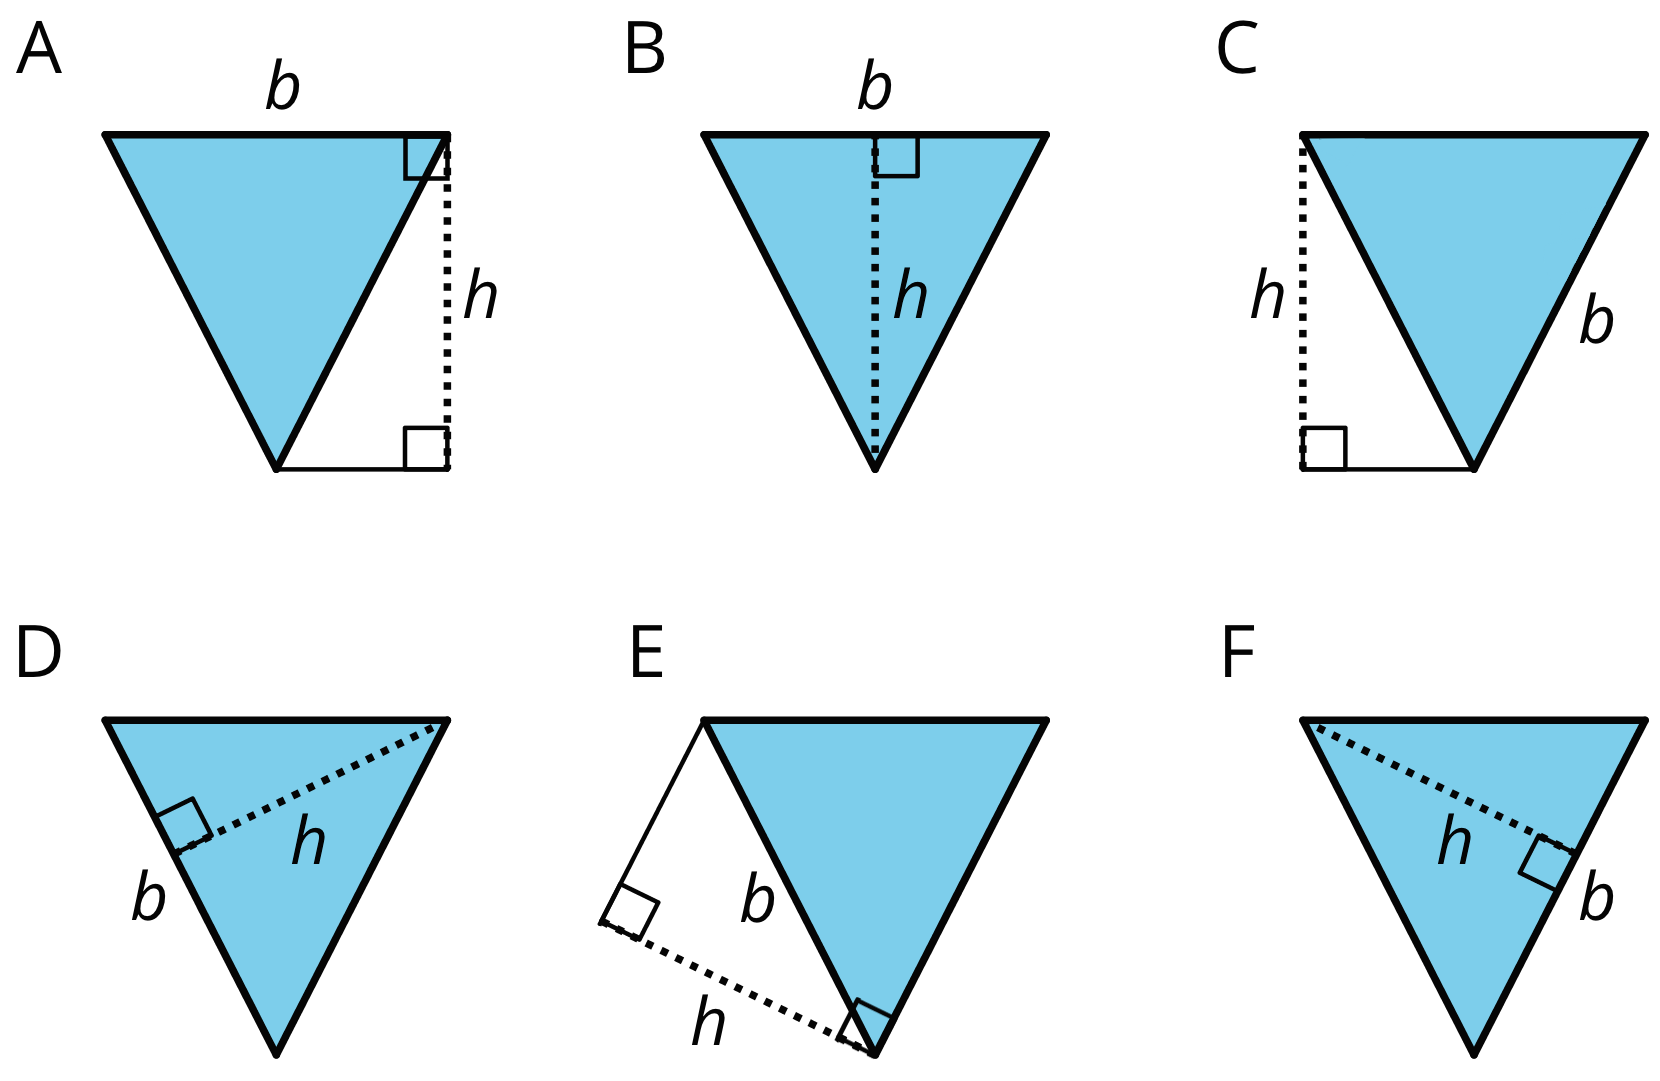 """Six images of the same triangle, labeled A, B, C, D, E, and F. On triangle A, the top side is labeled """"b"""" and a dashed line extending straight down from the right vertex islabeled """"h"""". On triangle B the top side is labeled """"b"""" and a dashed line extends from the center of the top side to the opposite vertex labeled """"h"""". On triangle C, the right side is labeled """"b"""" and a dashed line extends from the right top vertex straight down to the level of the bottom vertex. On triangle D the left side is labeled """"b"""" and a perpendicular line labeled """"h"""" extends to the opposite vertex. On triangle E, the right side is labeled """"b"""" and a dashed line labeled """"h"""" extends out from the bottom vertex at a right angle to the left side. On triangle F, the right side is labeled """"b"""" and a perpendicular dashed line labeled """"h"""" extends from the side labeled """"b"""" and extends to the opposite vertex."""